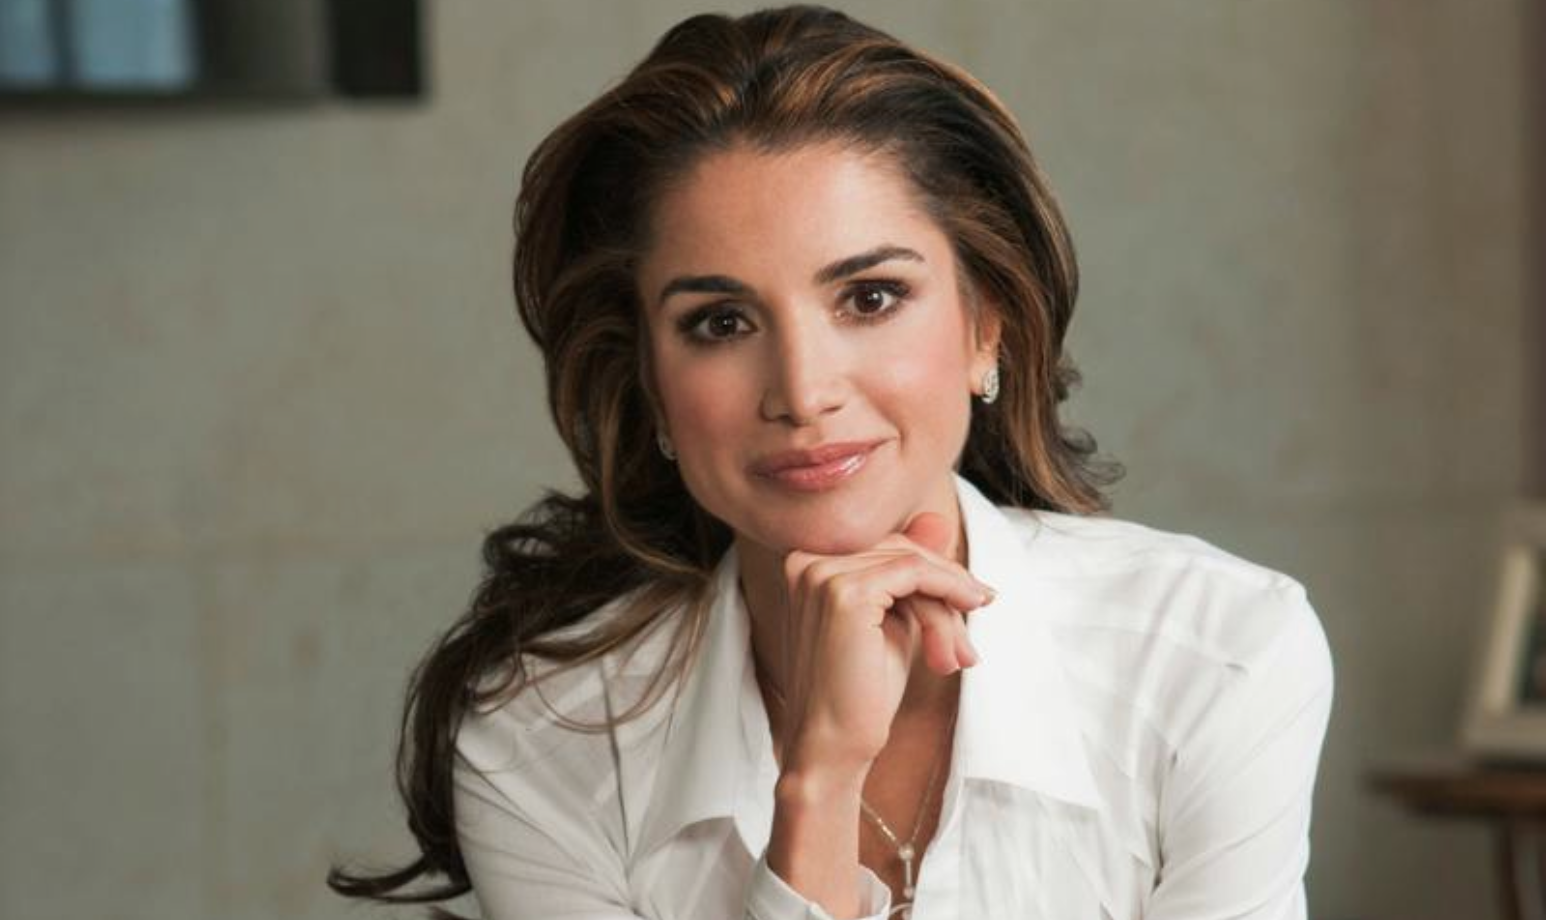 Quotes By Famous Women 12 Motivational Queen Rania Quotes To Inspire You